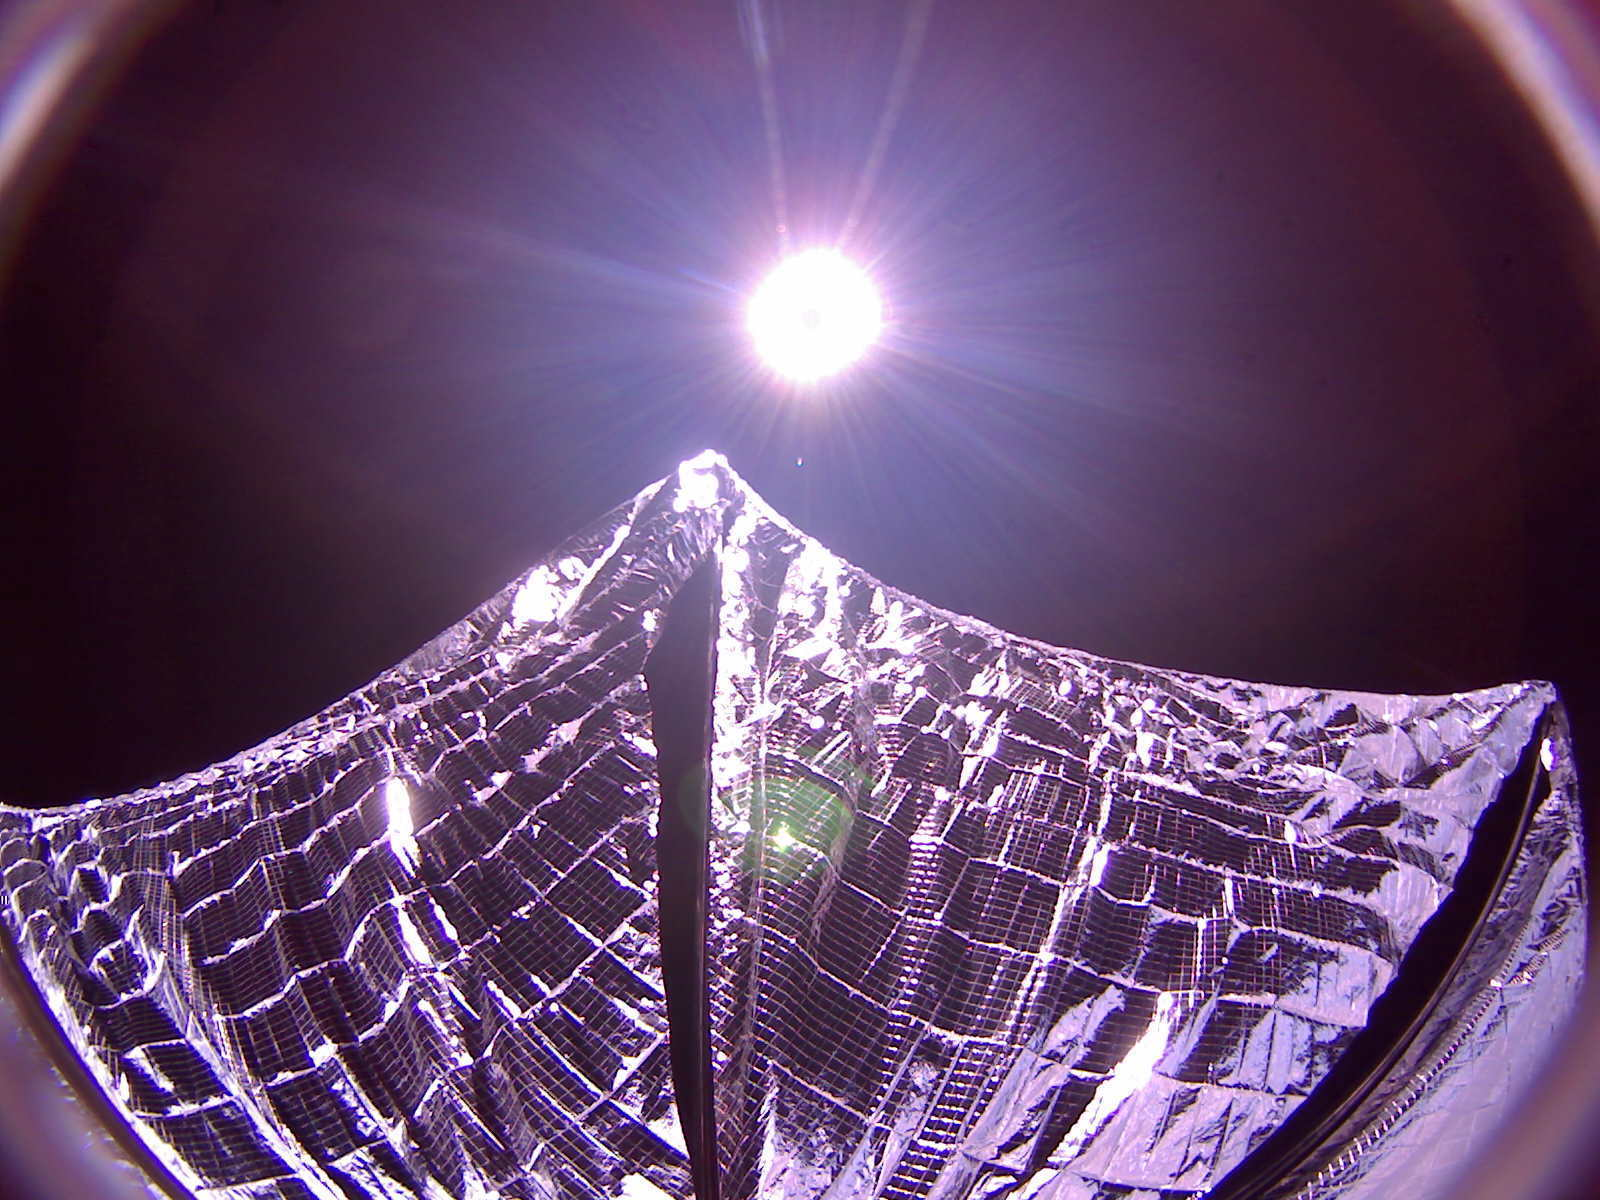 A camera aboard LightSail took this picture of the deployed solar sail. Credit: The Planetary Society